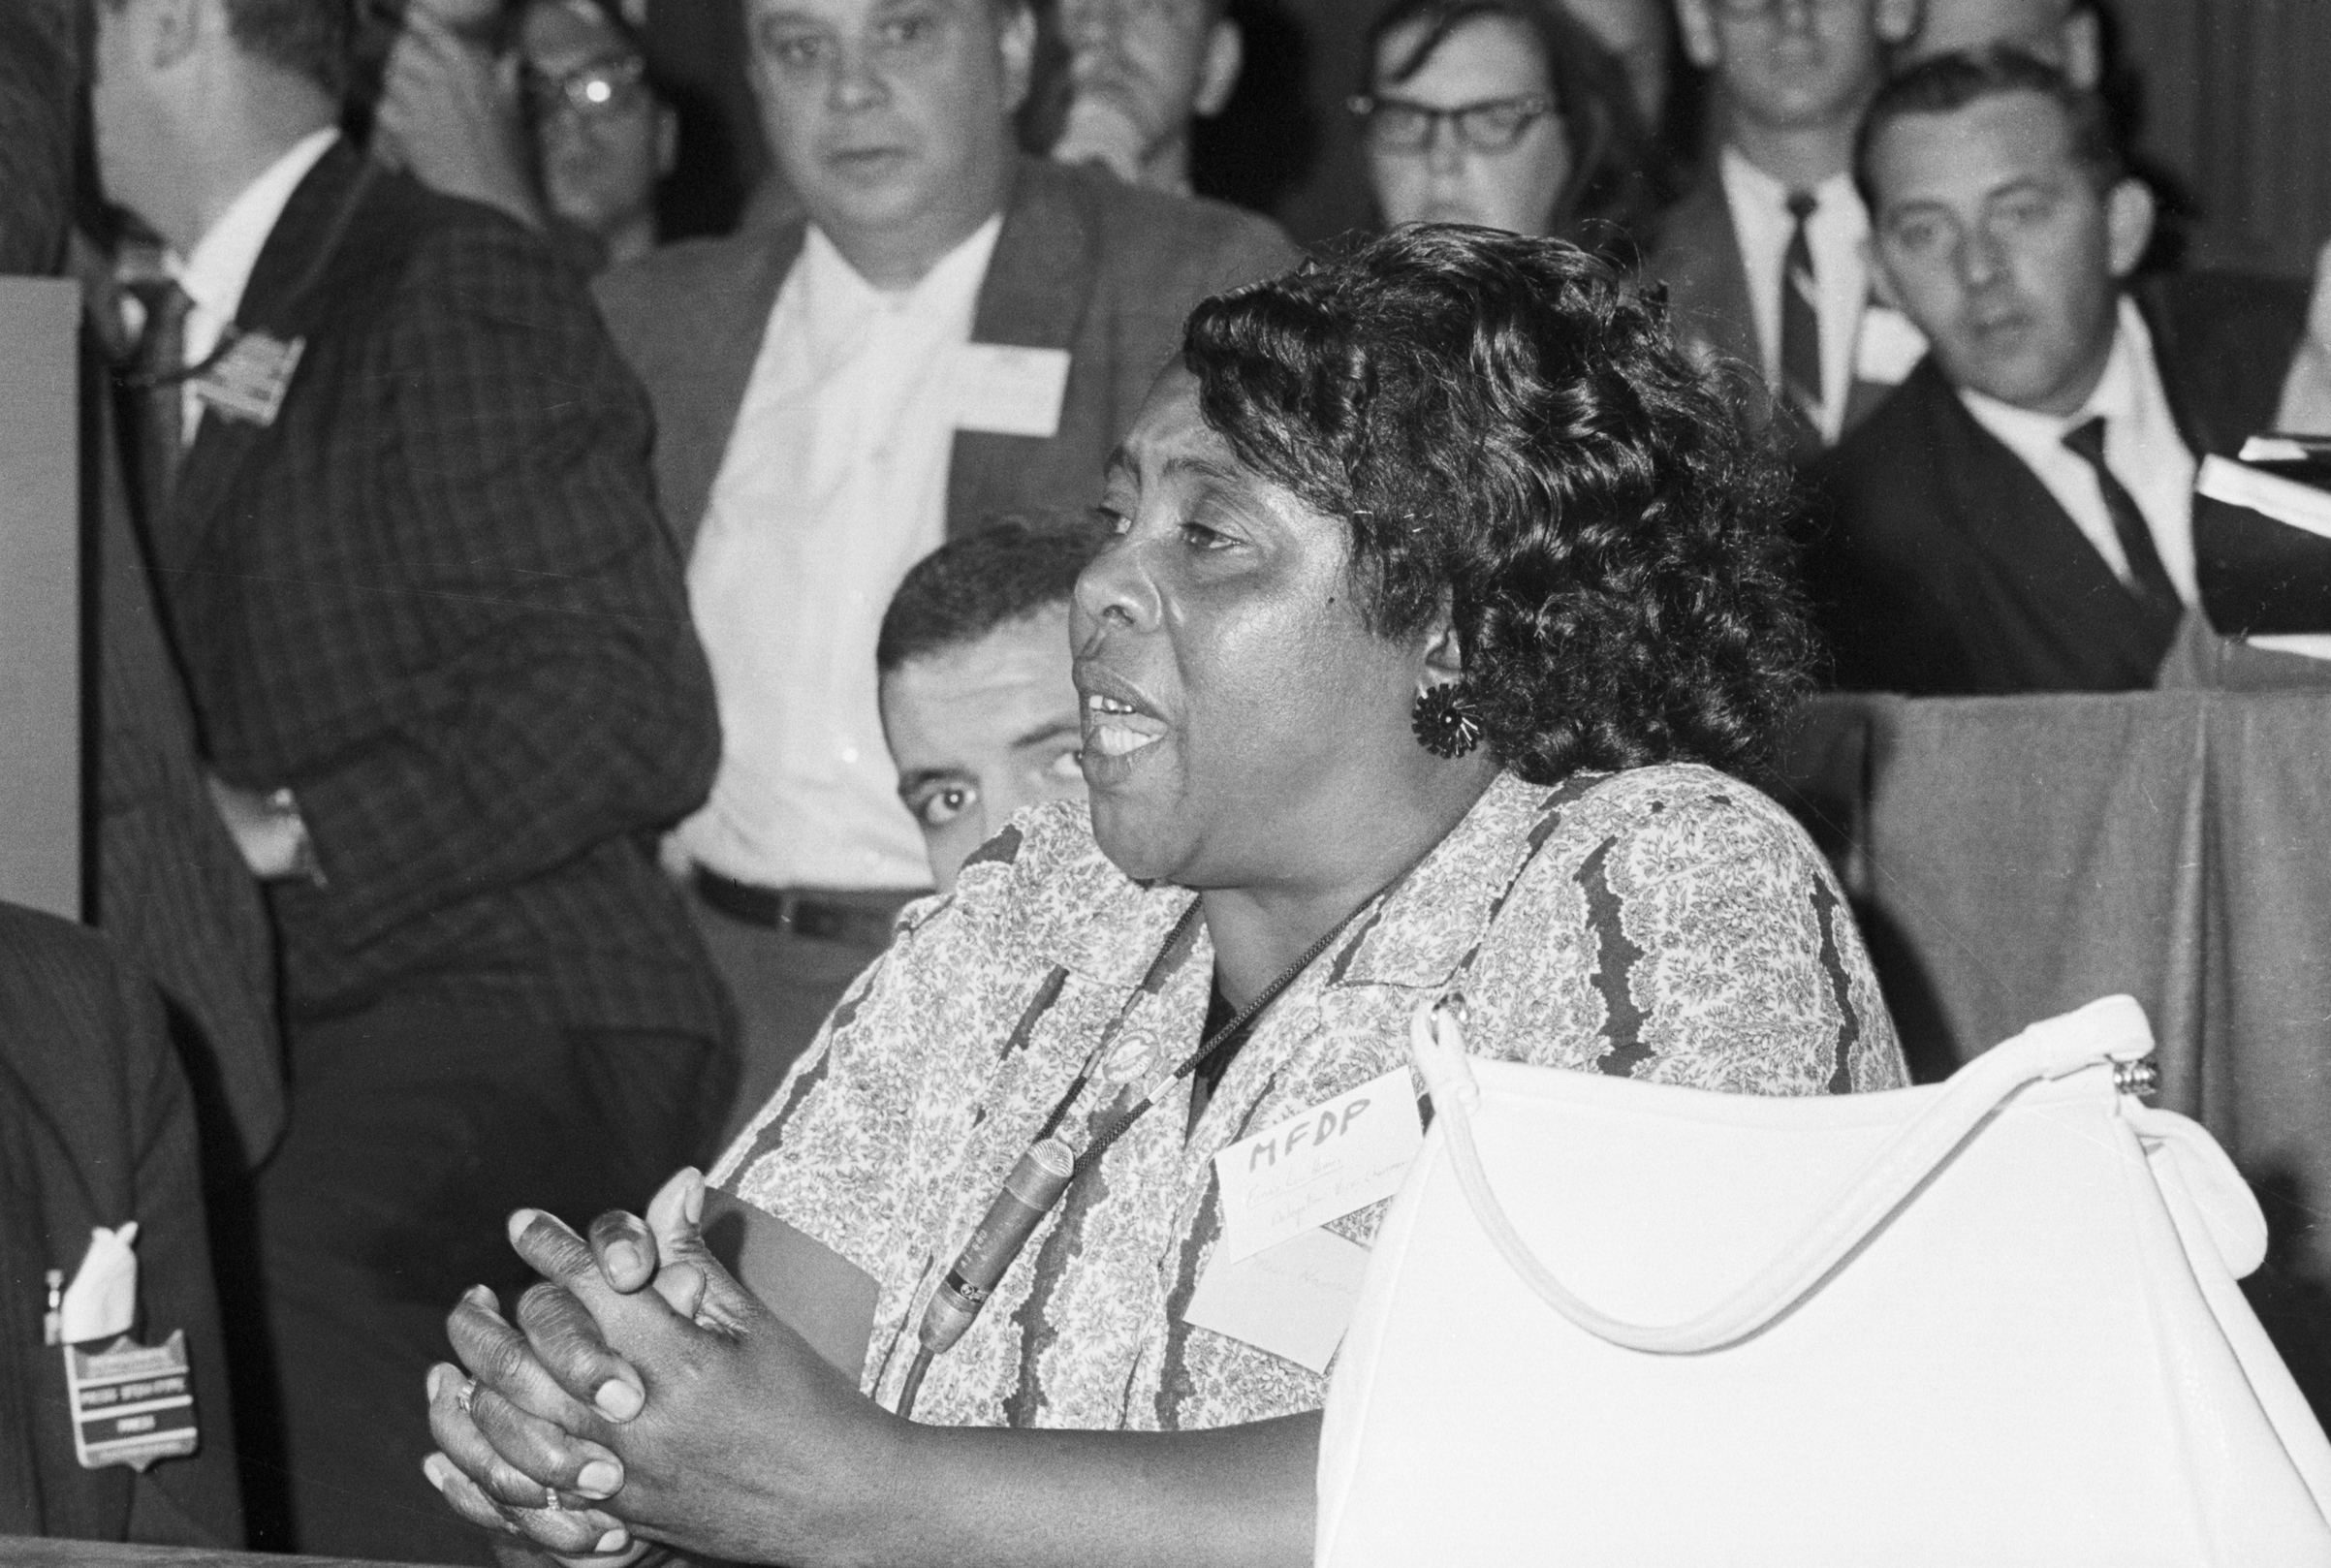 Mississippi Freedom Democratic Party delegate Fannie Lou Hamer speaks out for the meeting of her delegates at a credential meeting prior to the formal meeting of the Democratic National Convention.